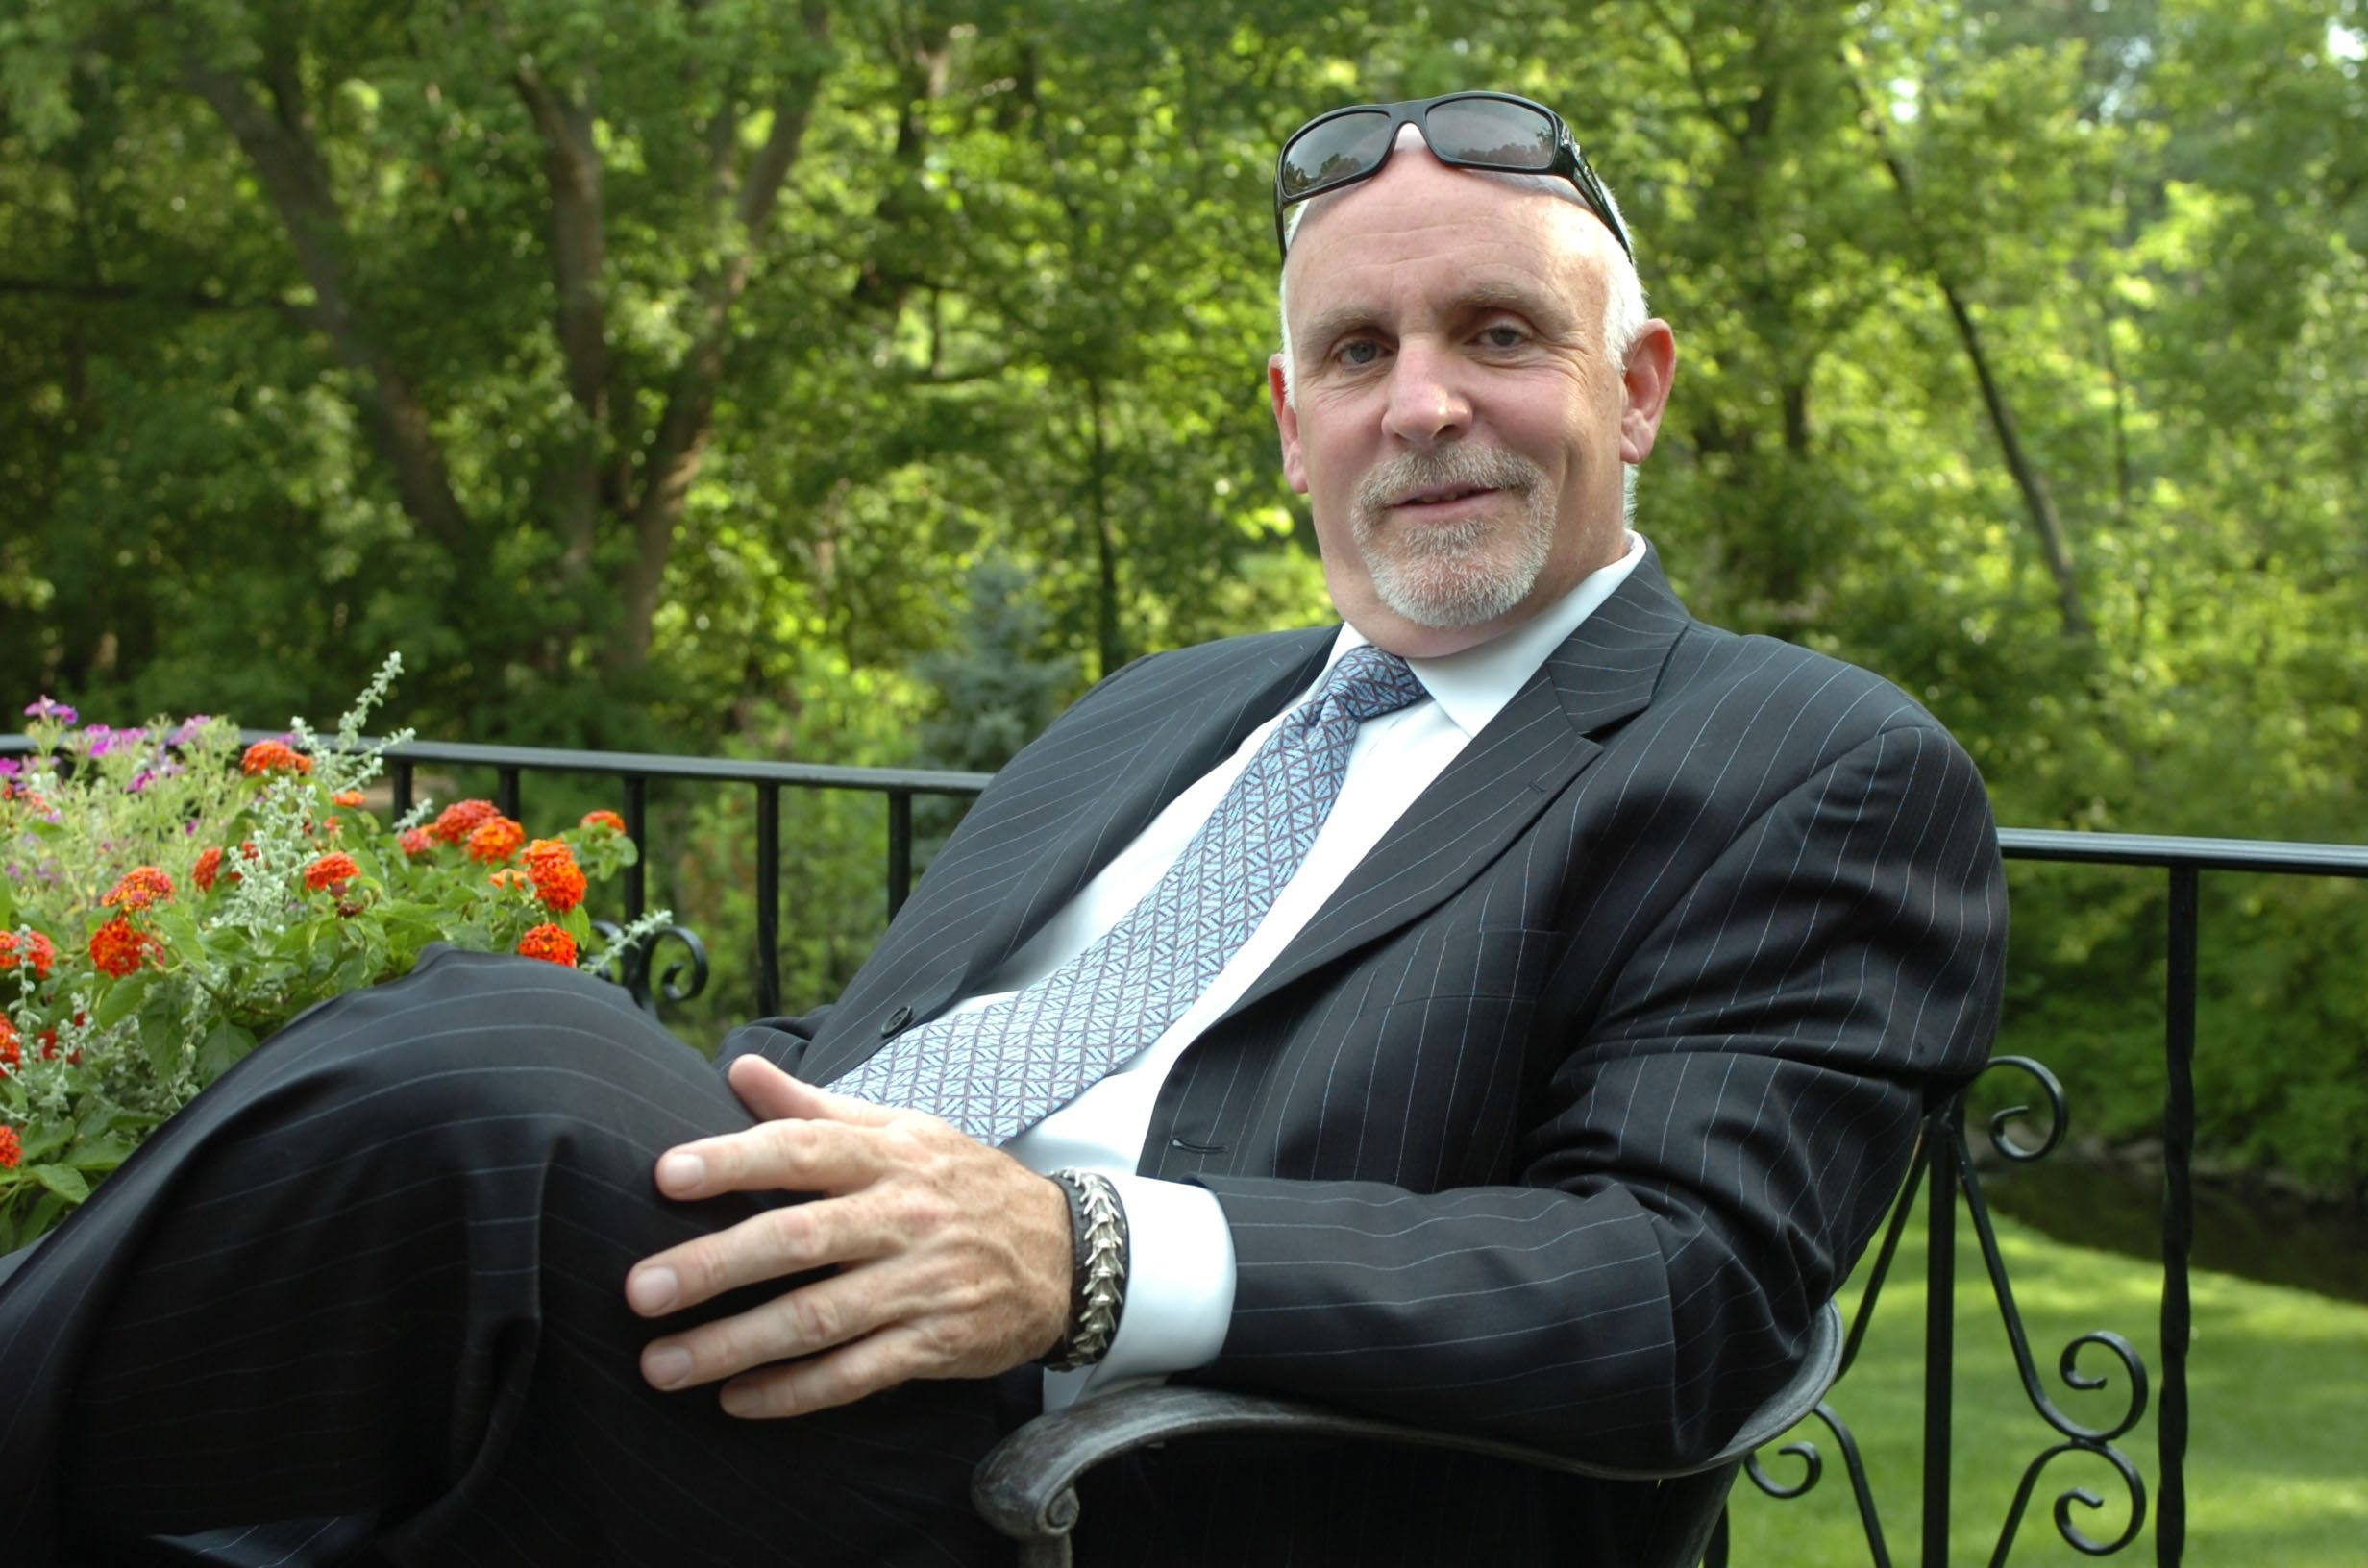 A News file photo of developer William Huntress at his Amherst home. (News file photo)